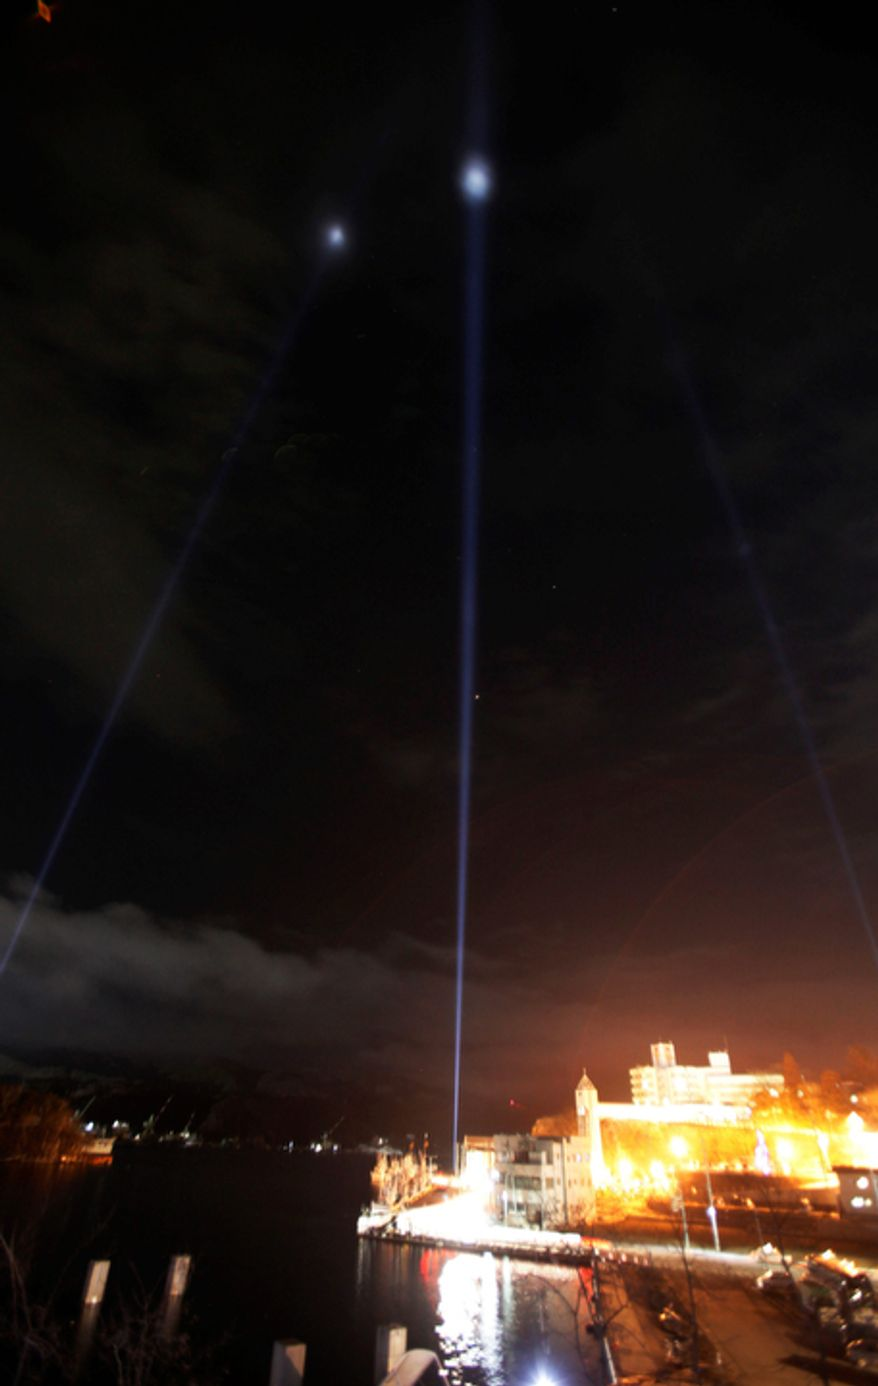 """Three lights are projected in the evening sky during a """"Light from 311 Japan"""" event in the earthquake and tsunami-devastated city of Kesennuma, Iwate Prefecture, northeastern Japan, Sunday, March 11 2012.  (AP Photo/Koji Sasahara)"""